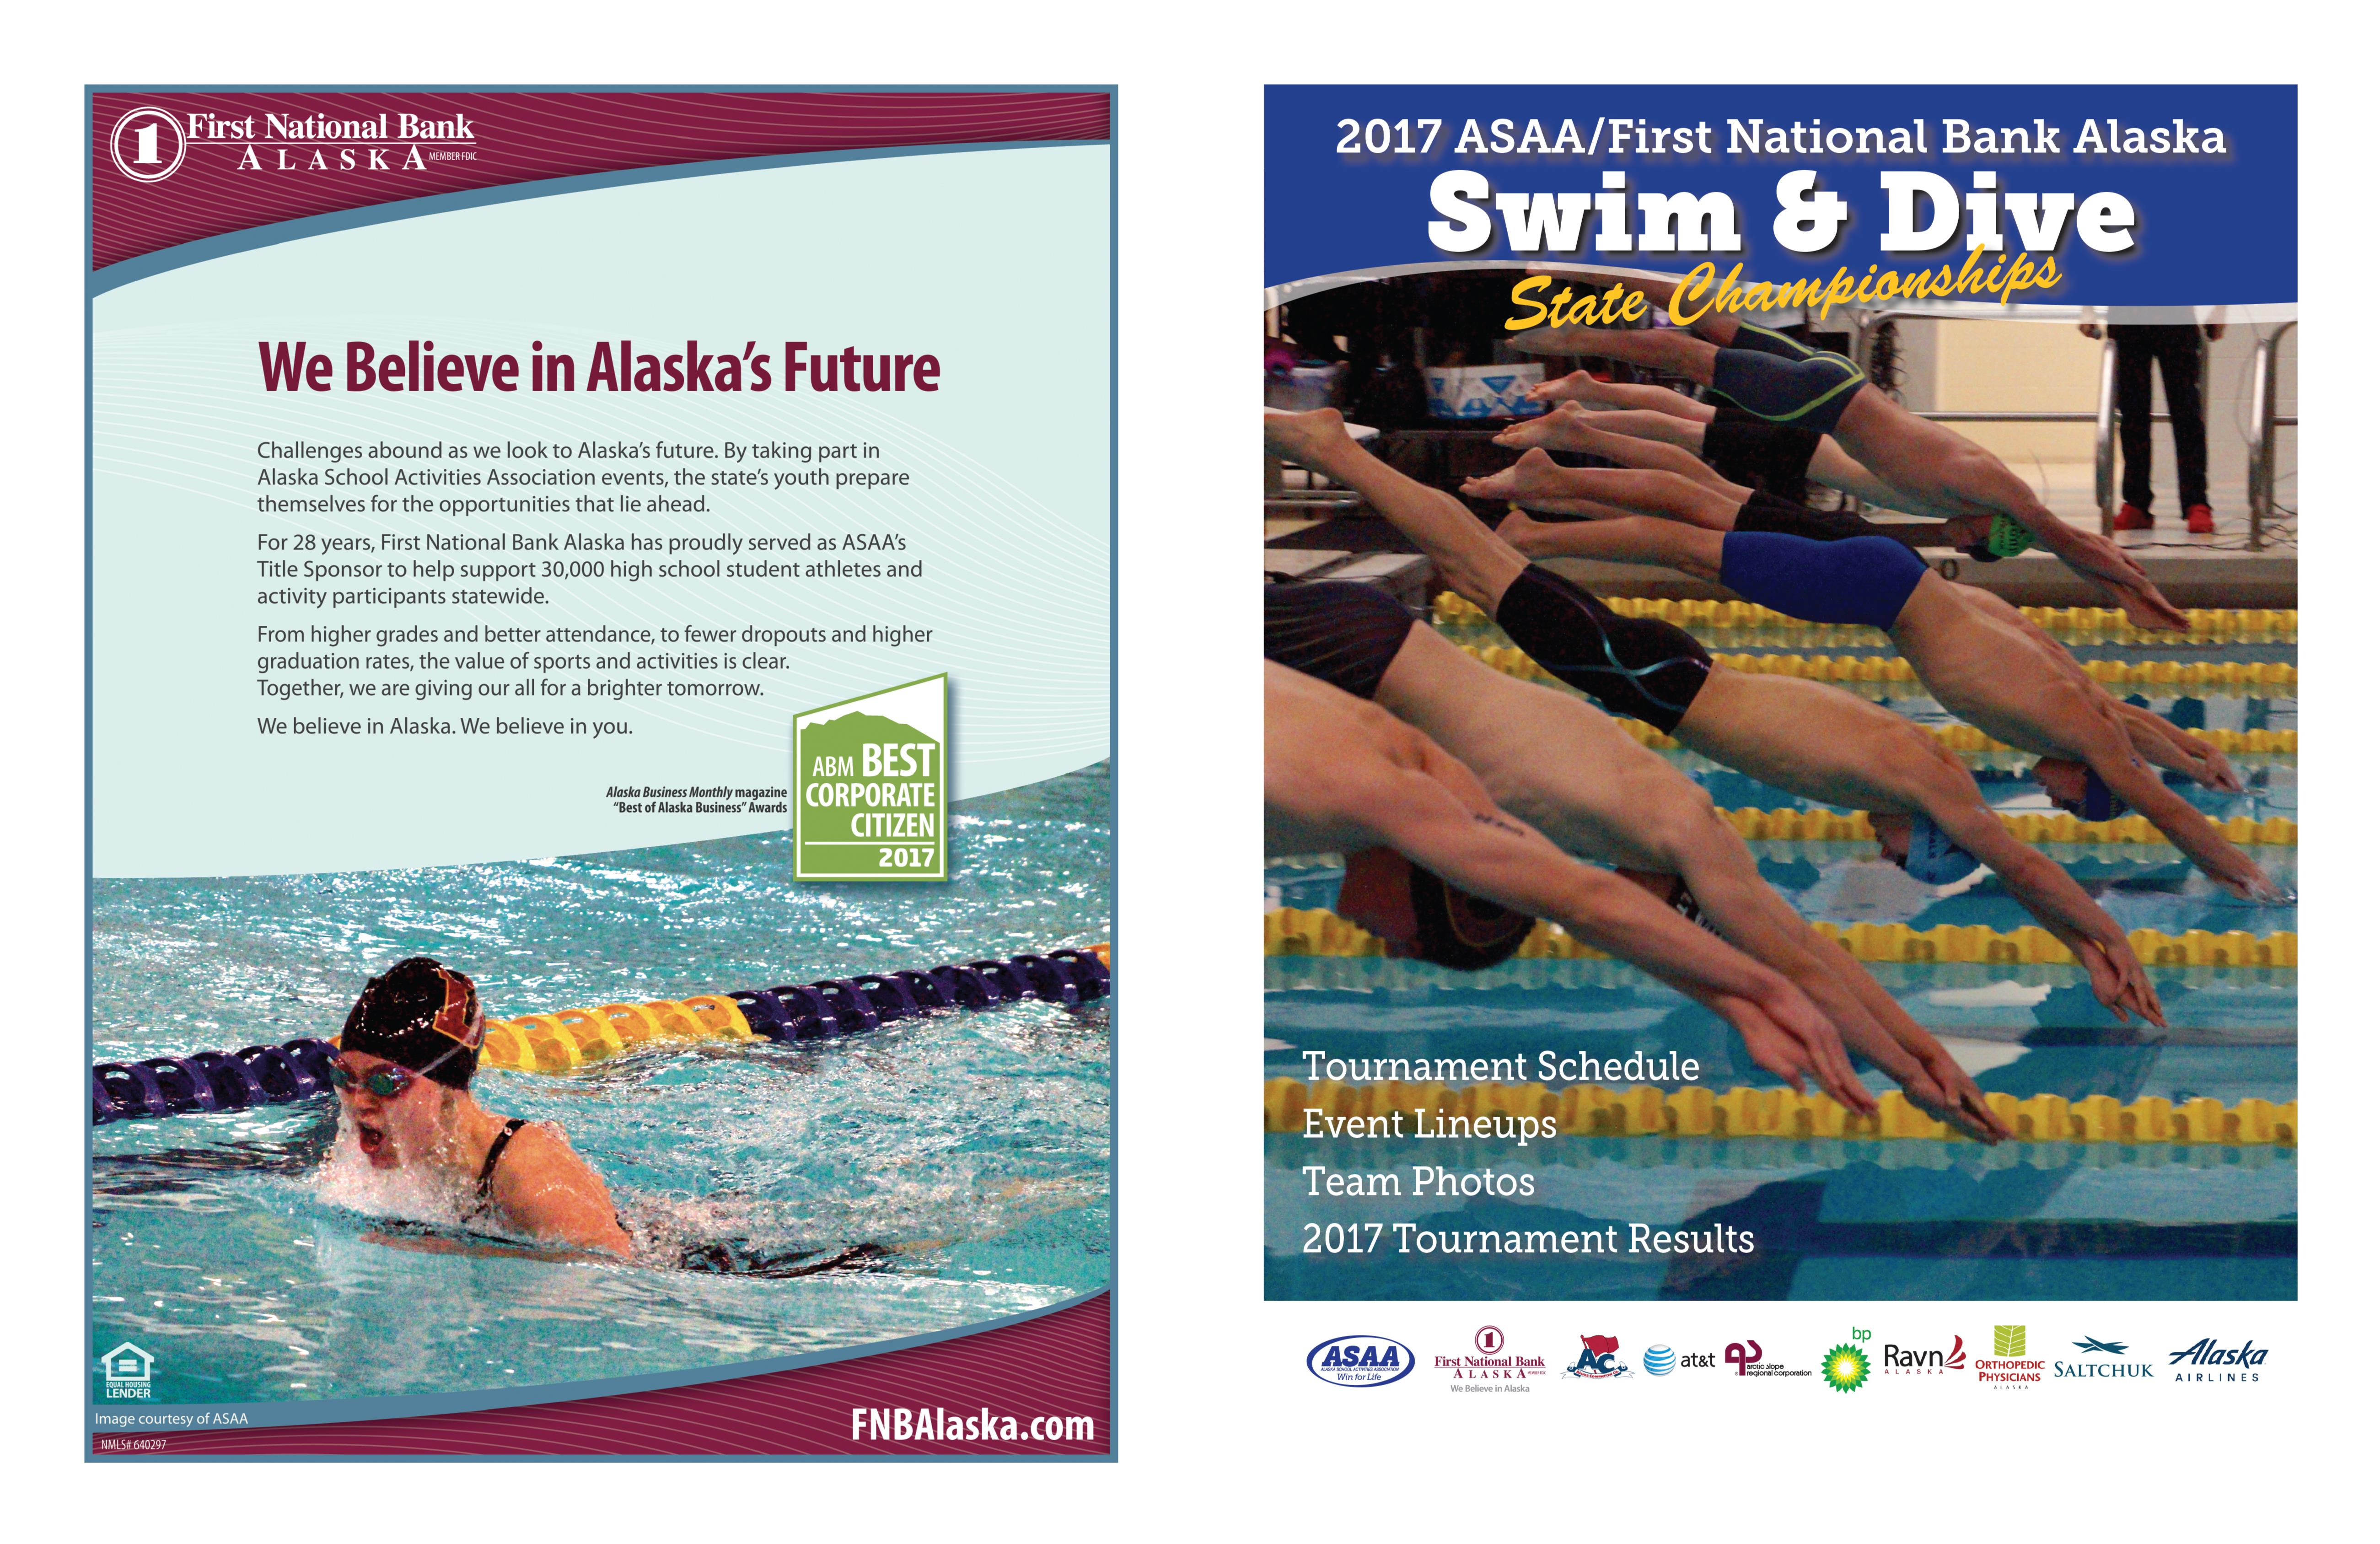 2017 ASAA/First National Bank Alaska Swim & Dive State Championship Program cover image